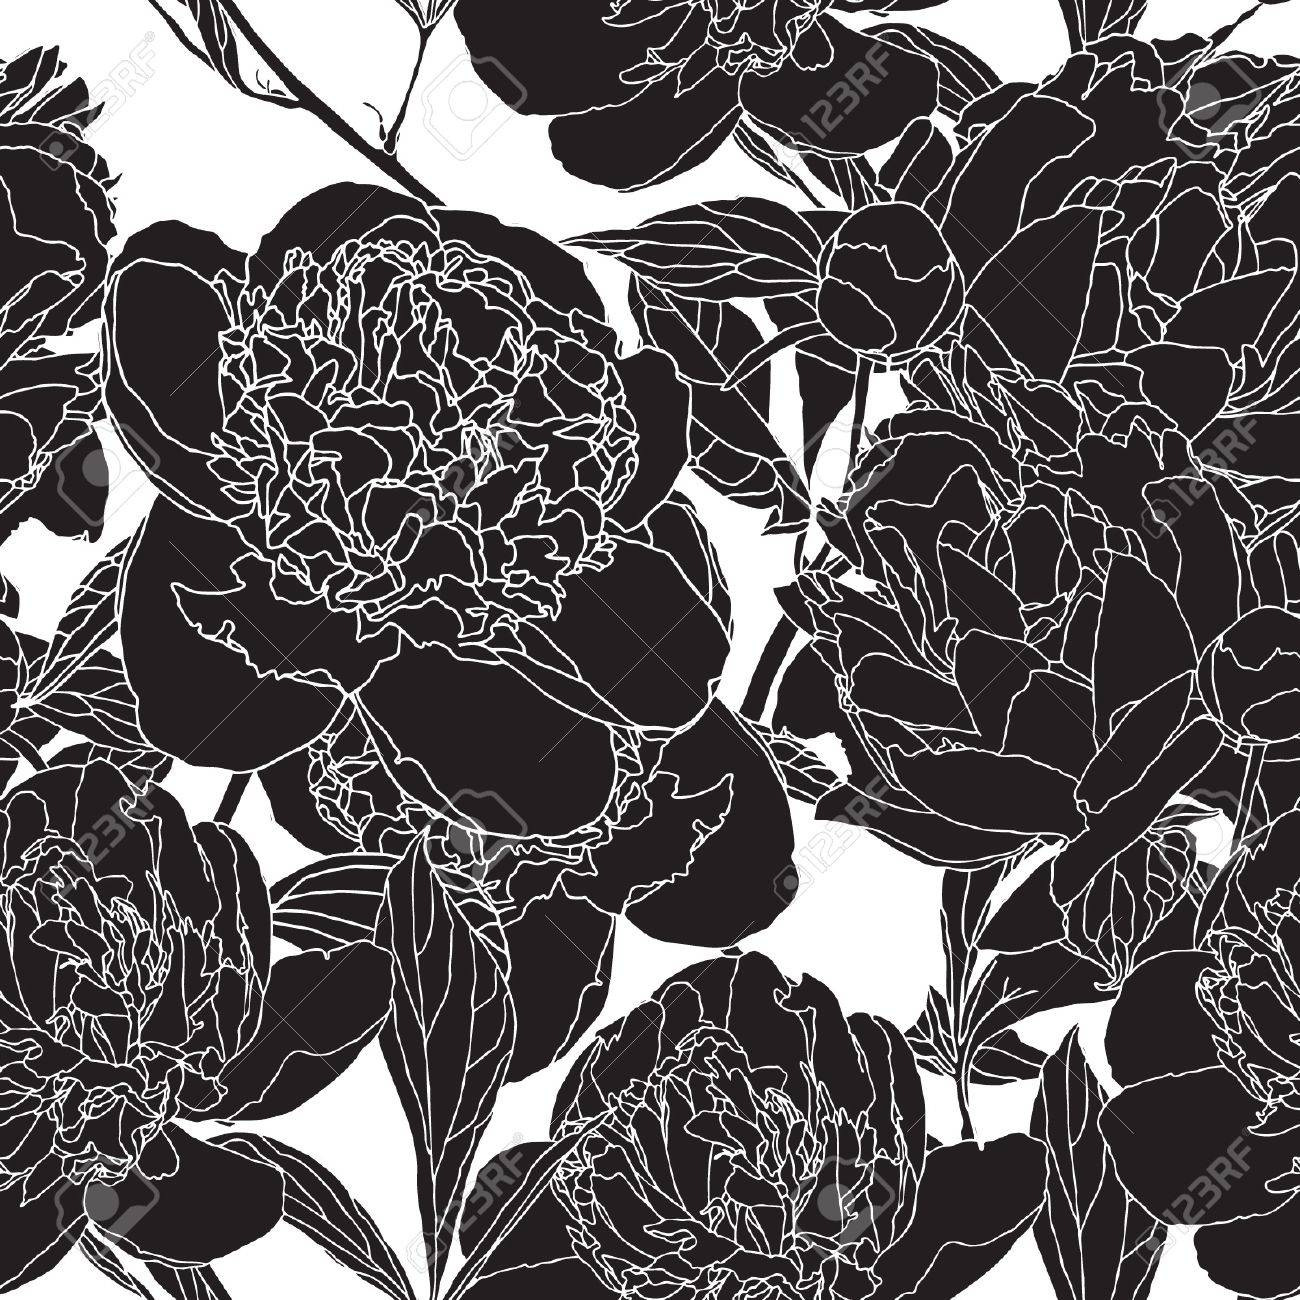 Elegance Seamless pattern with flowers peonies, vector floral illustration in vintage style Stock Vector - 14177125